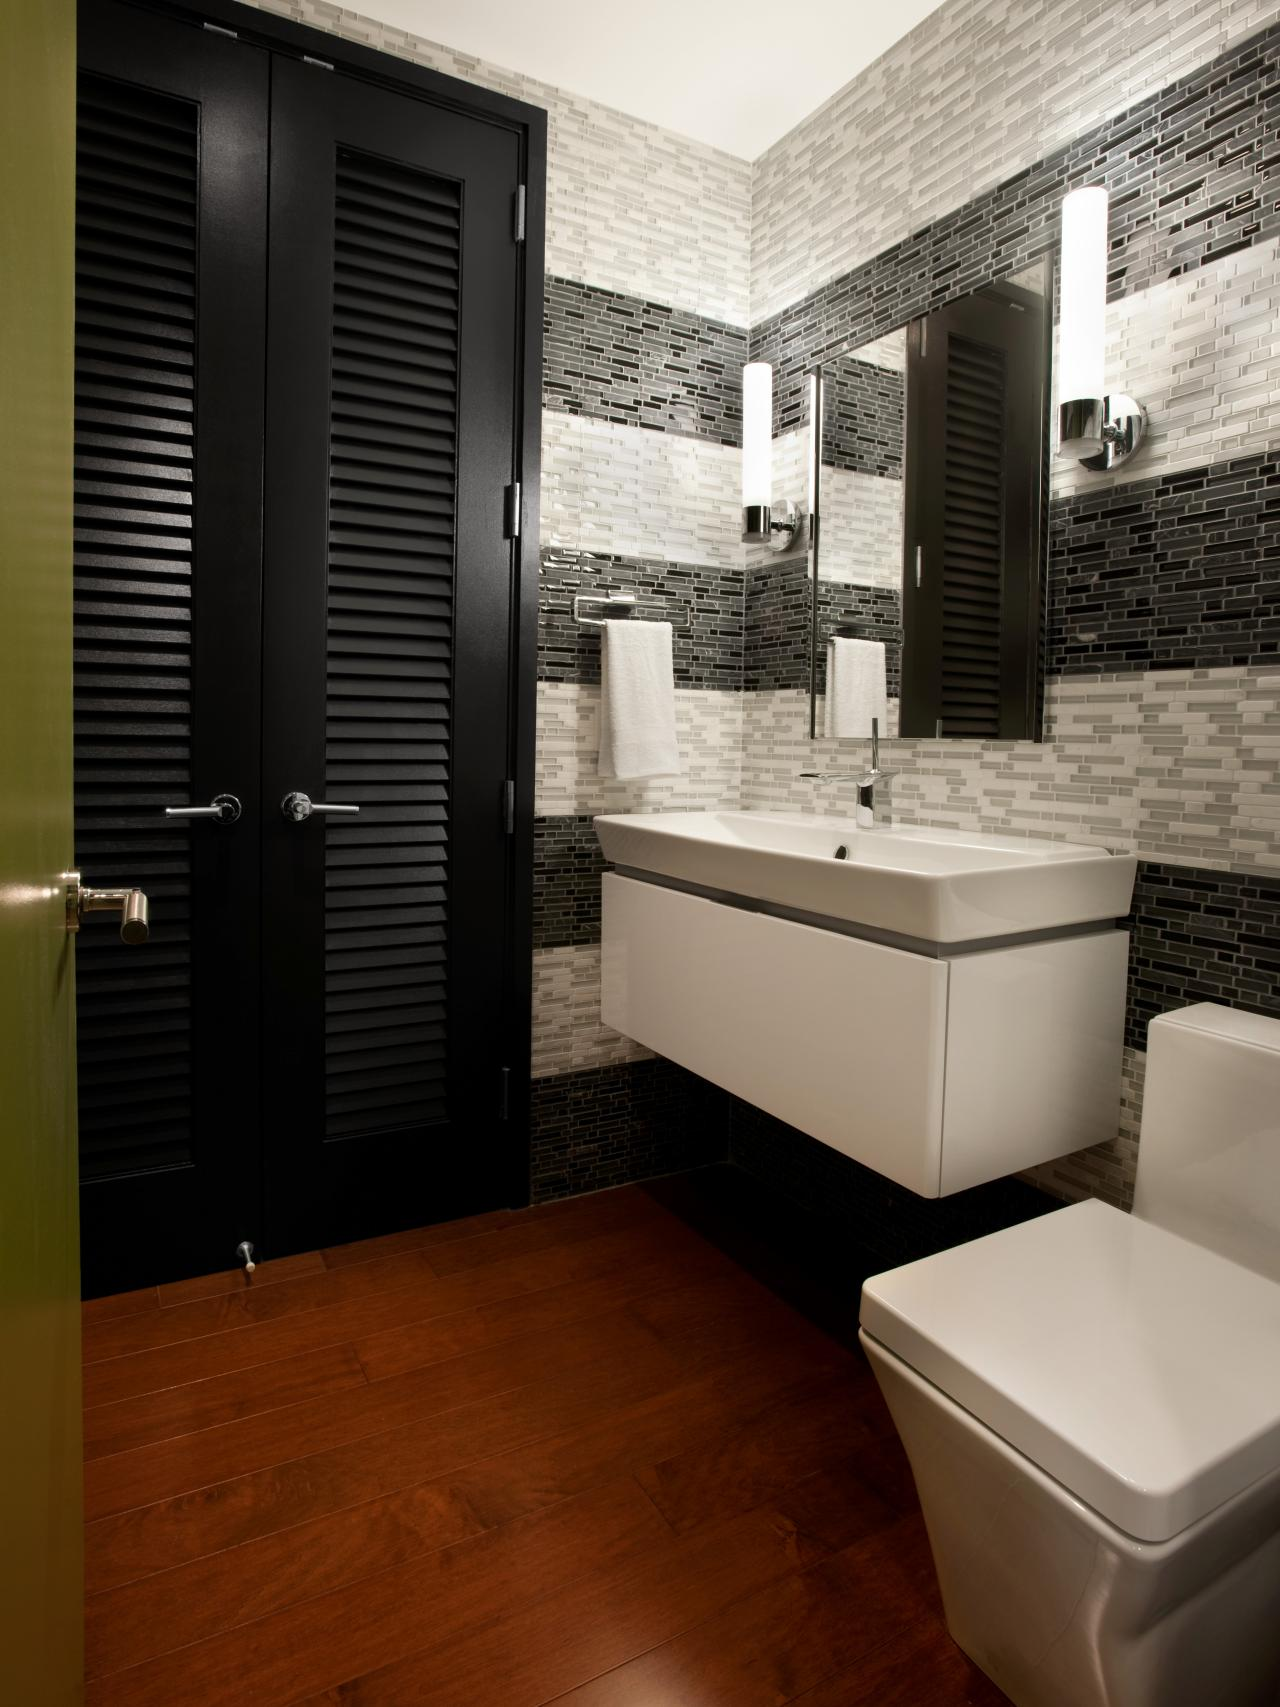 Bathroom Remodel Ideas Modern. Tags: Bathroom Remodel Ideas Modern